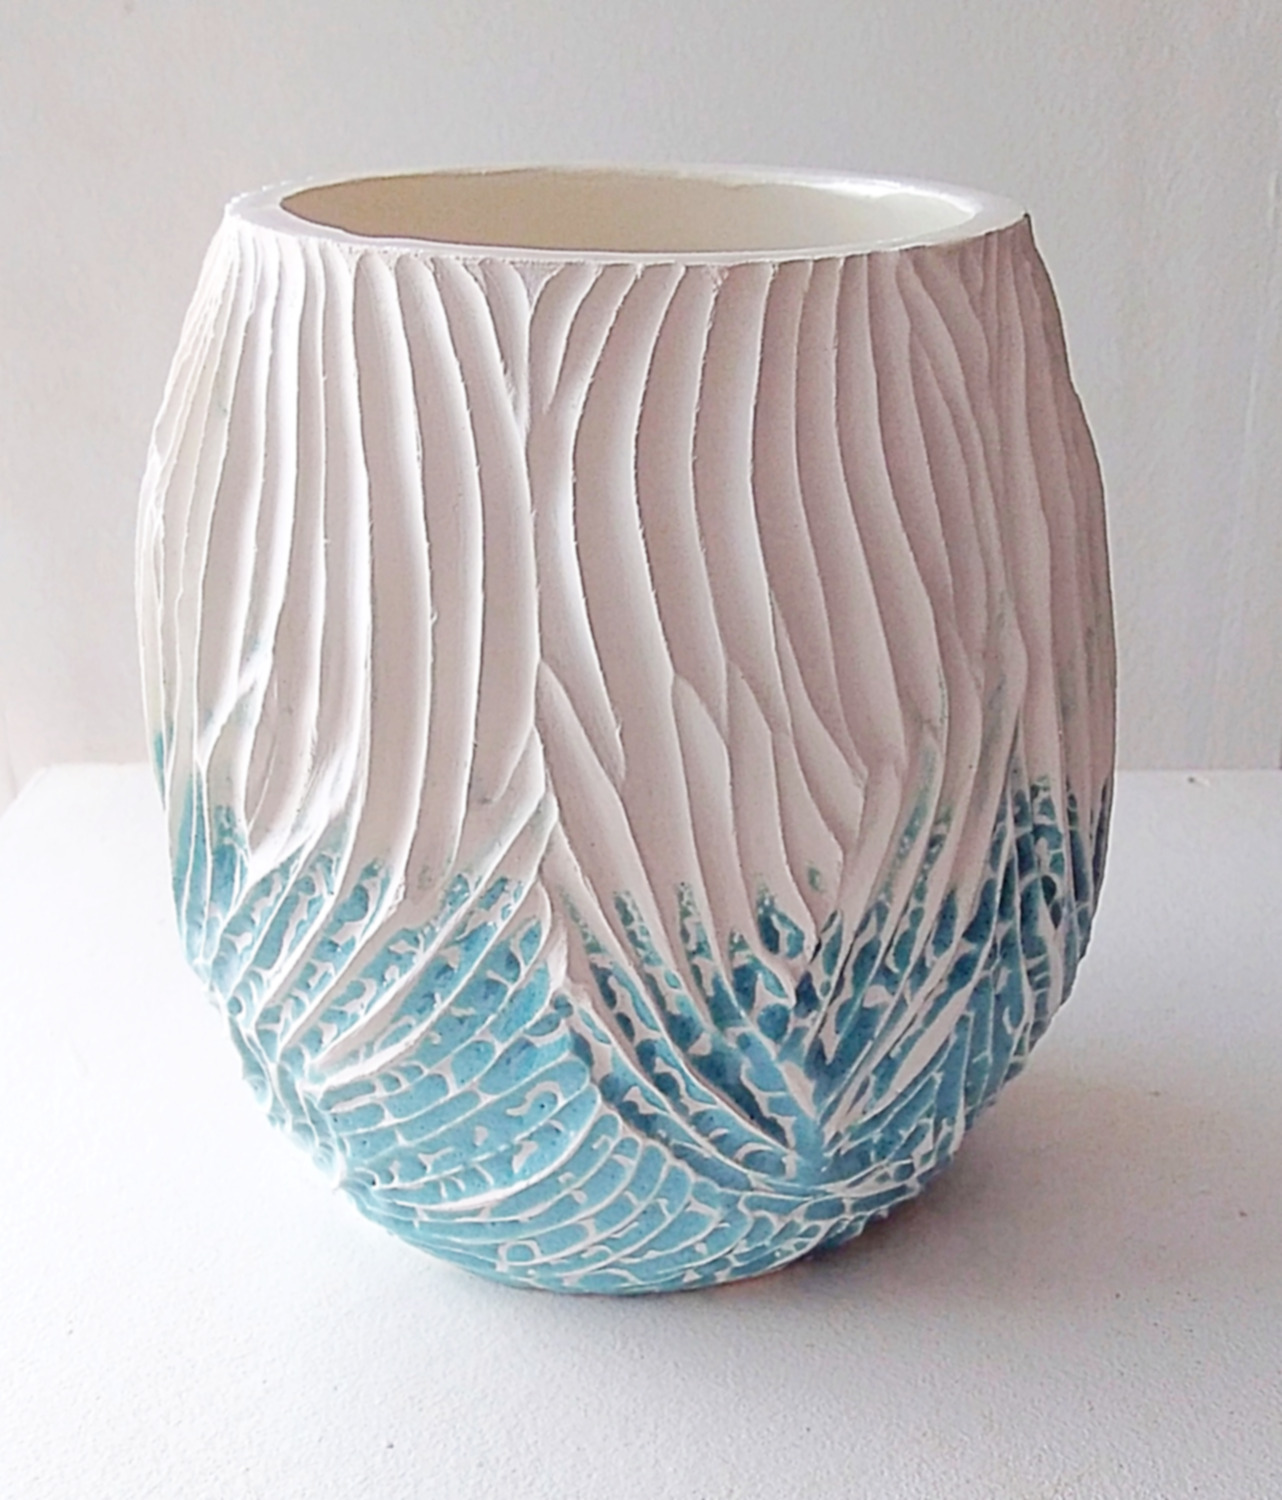 Carved tumbler by Vera